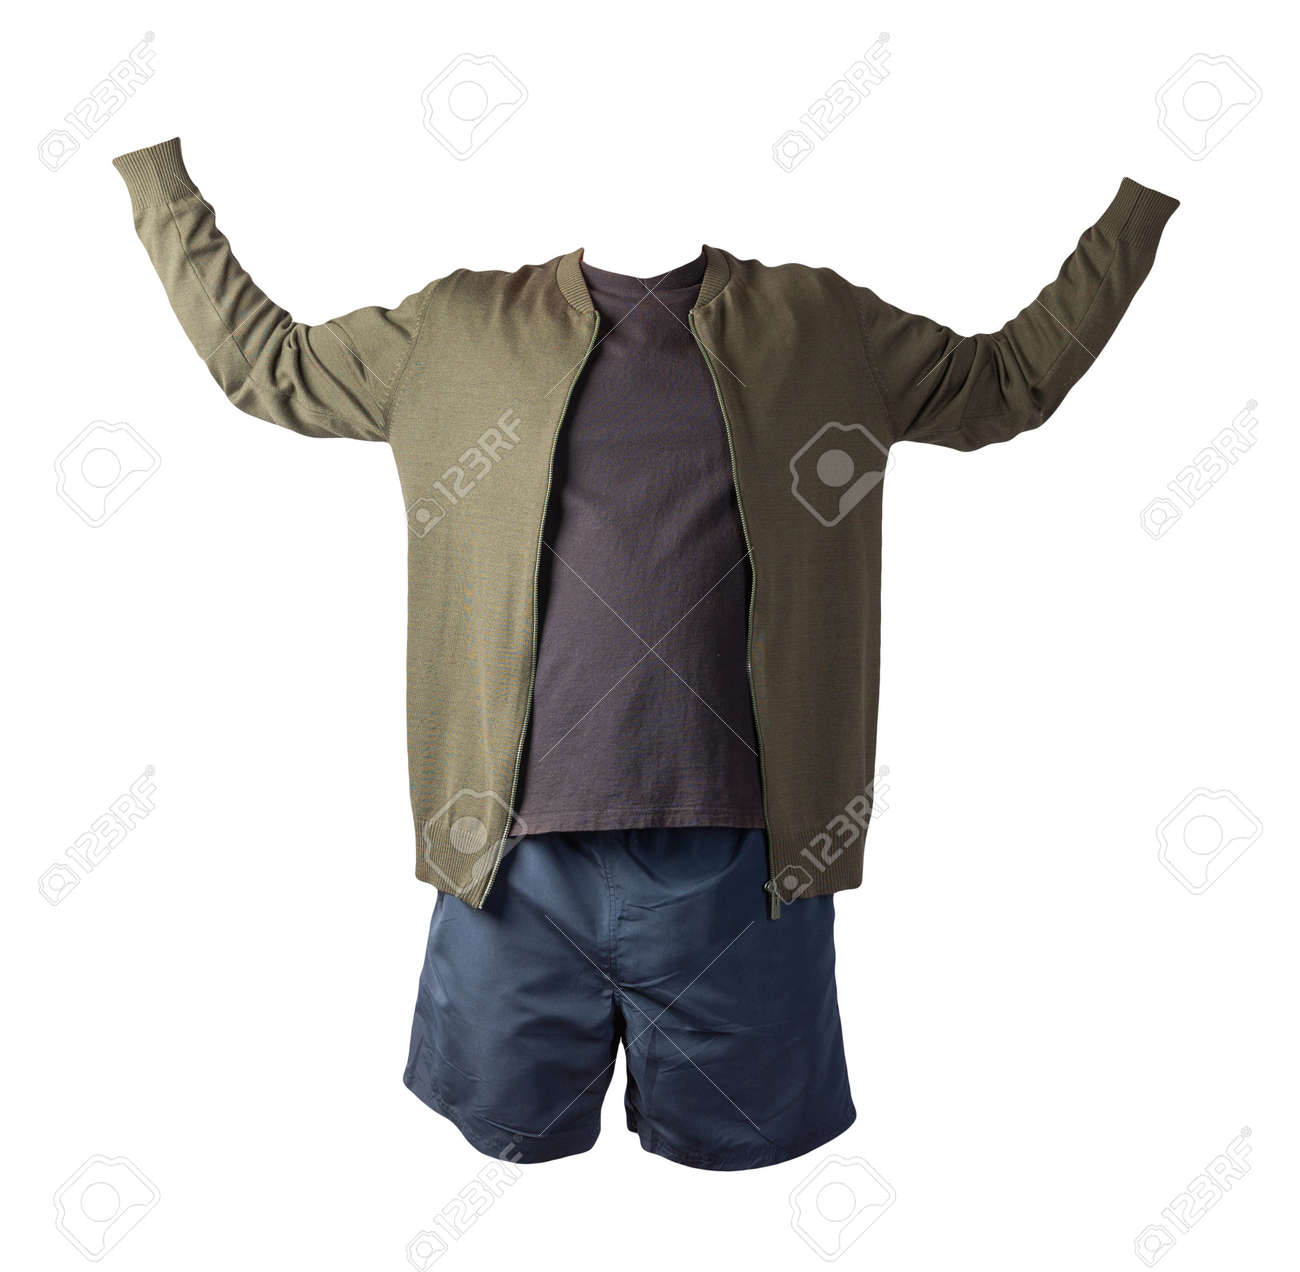 mens dark green knitted bomber jacket, black t-shirt and dark blue sports shorts isolated on white background. fashionable casual wear - 172073842